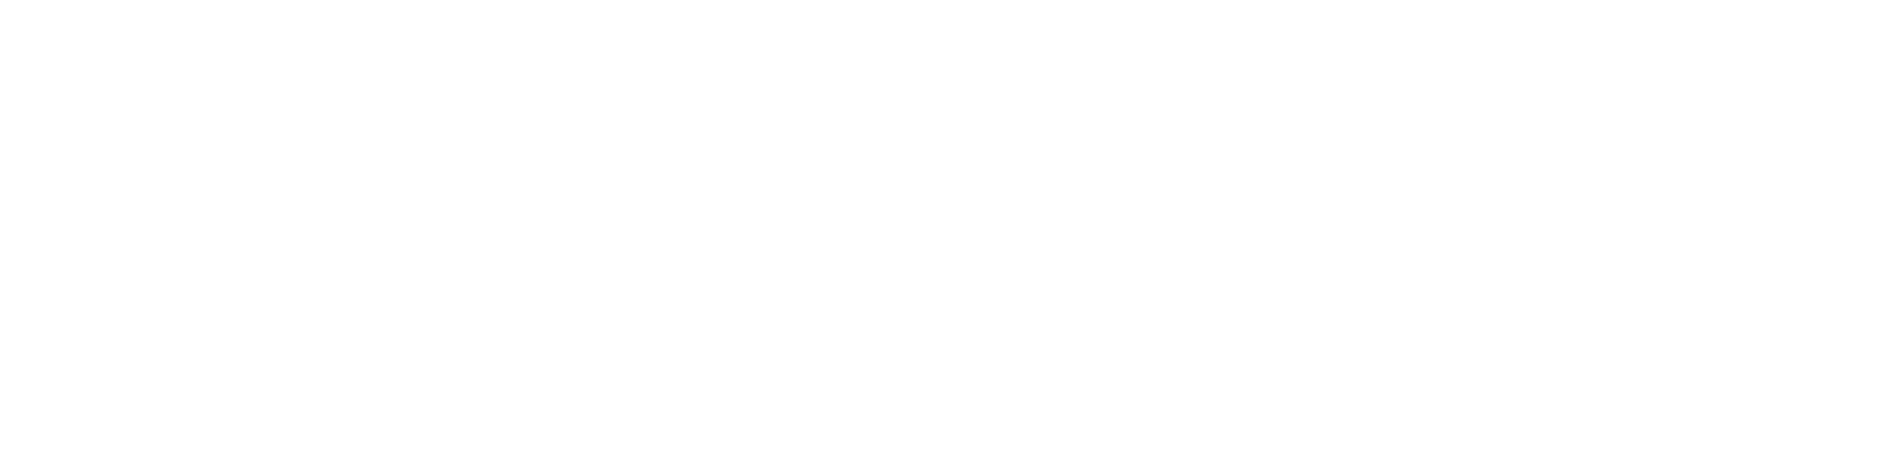 next gen building v2